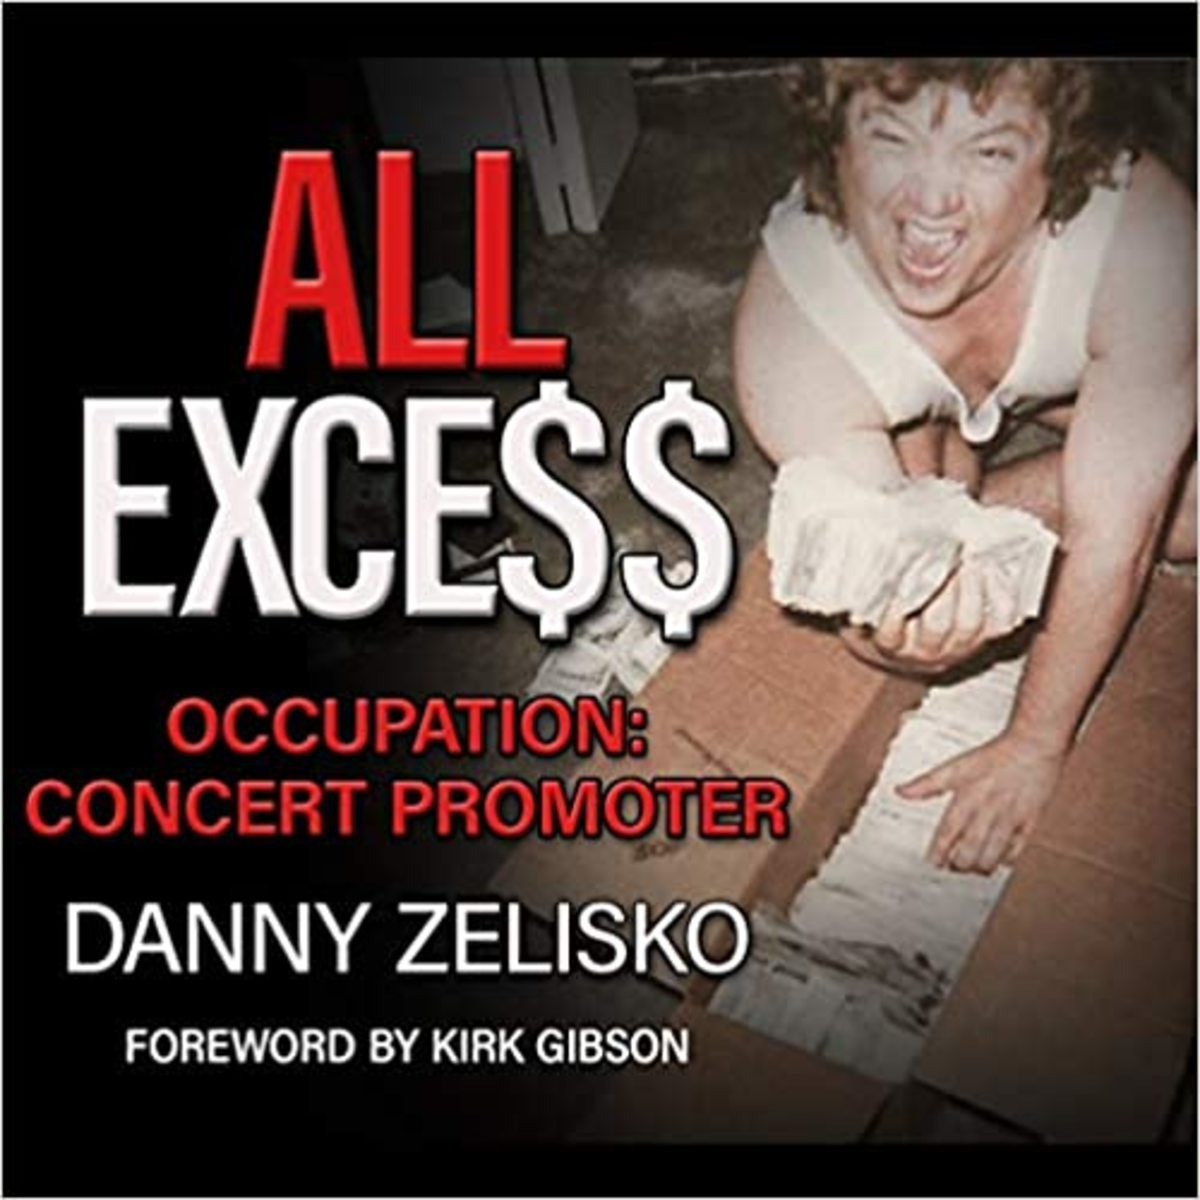 All Excess